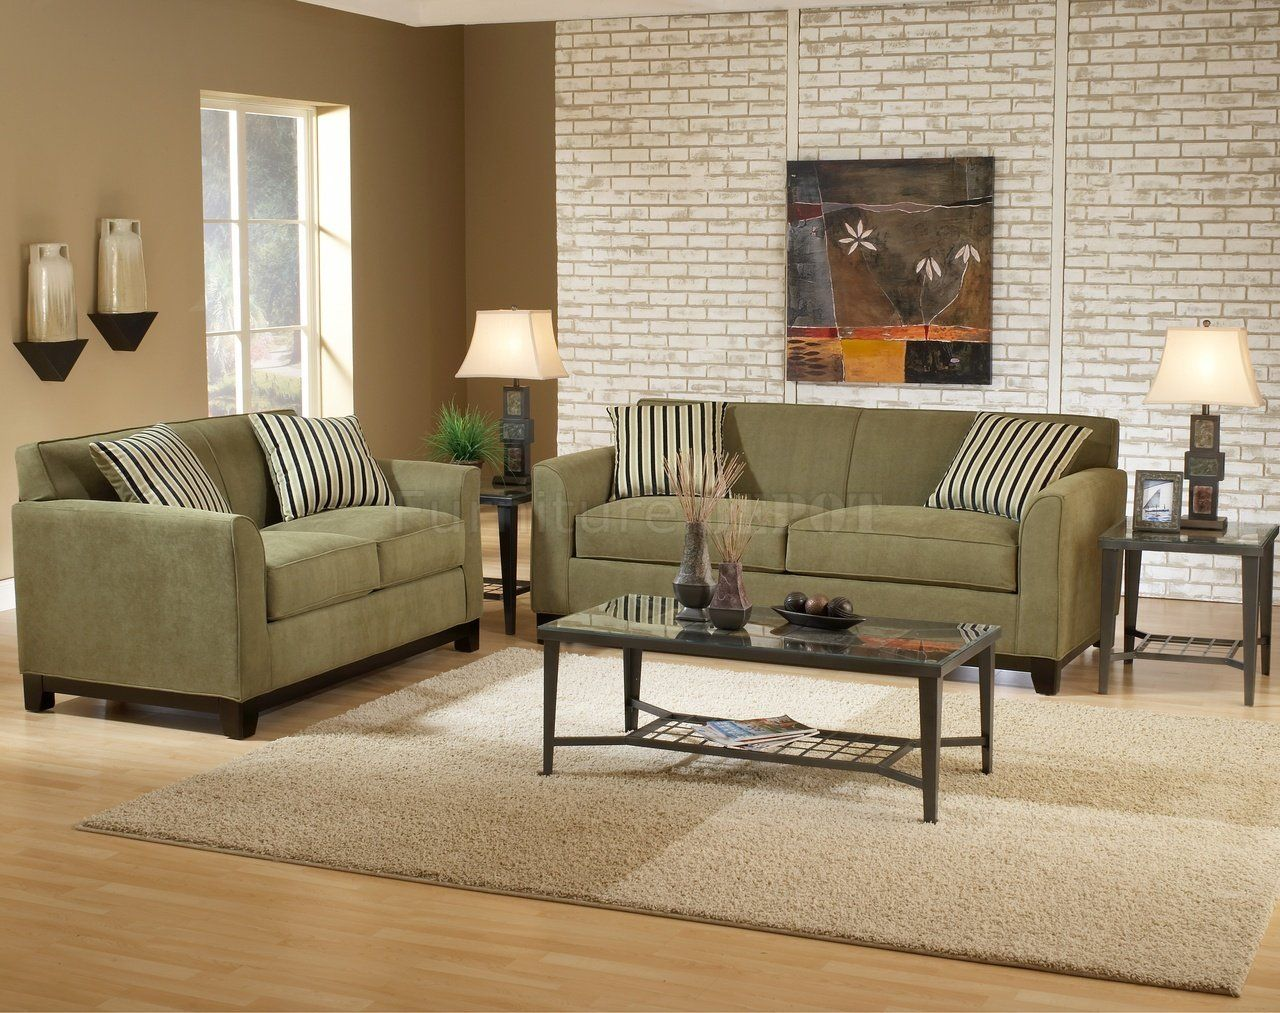 modern sofa colors best sectional brands 2017 wall color for sage green couch fabric casual